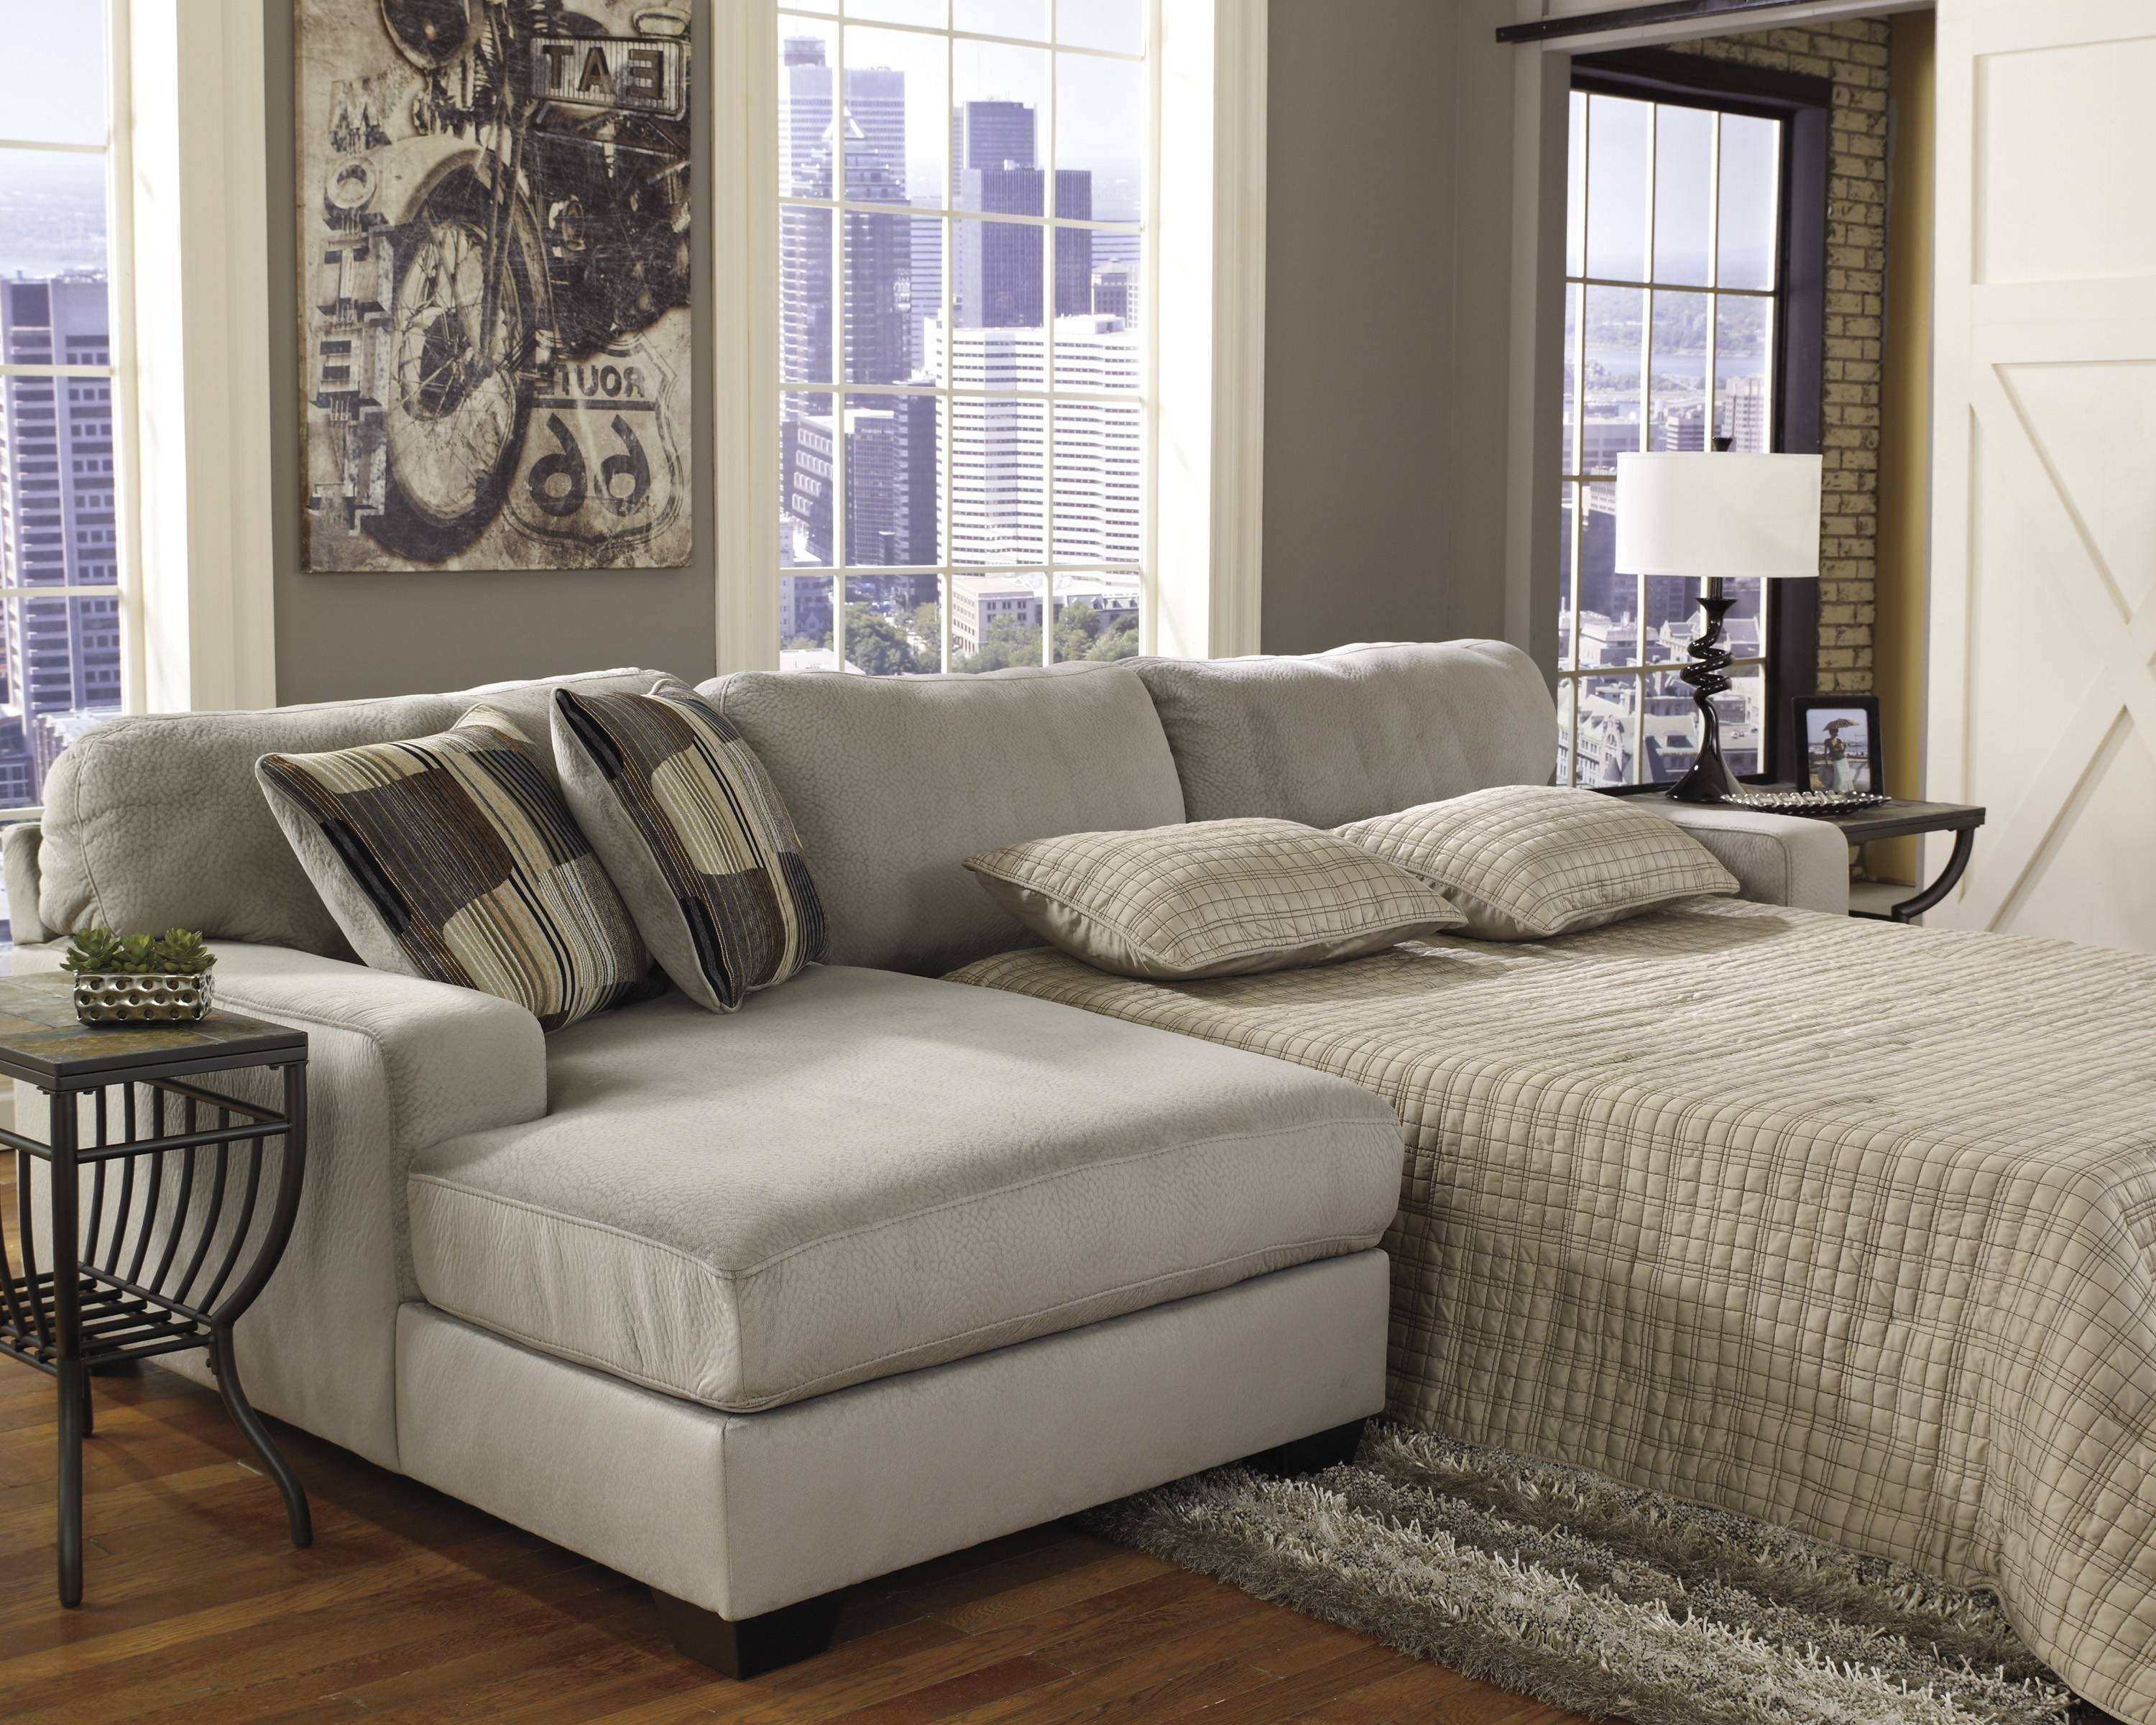 Chaise Sleeper Sofa Sectional | Tehranmix Decoration Inside Sectional Sleeper Sofas With Chaise (View 4 of 30)